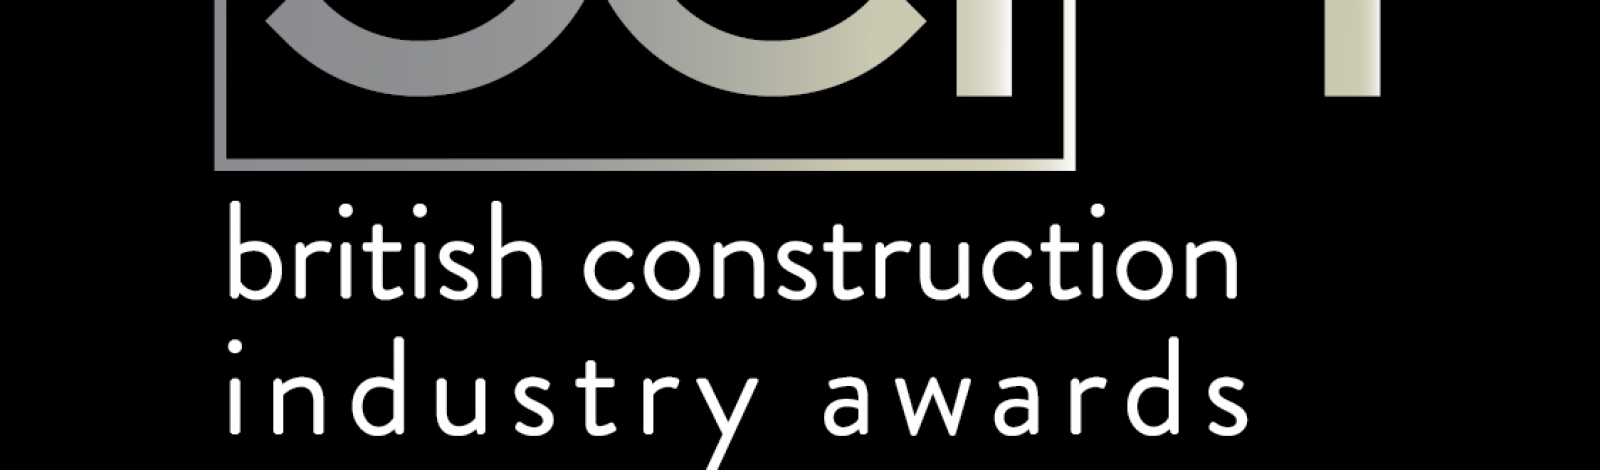 British Construction Industry Award Finalists - Clancy Docwra